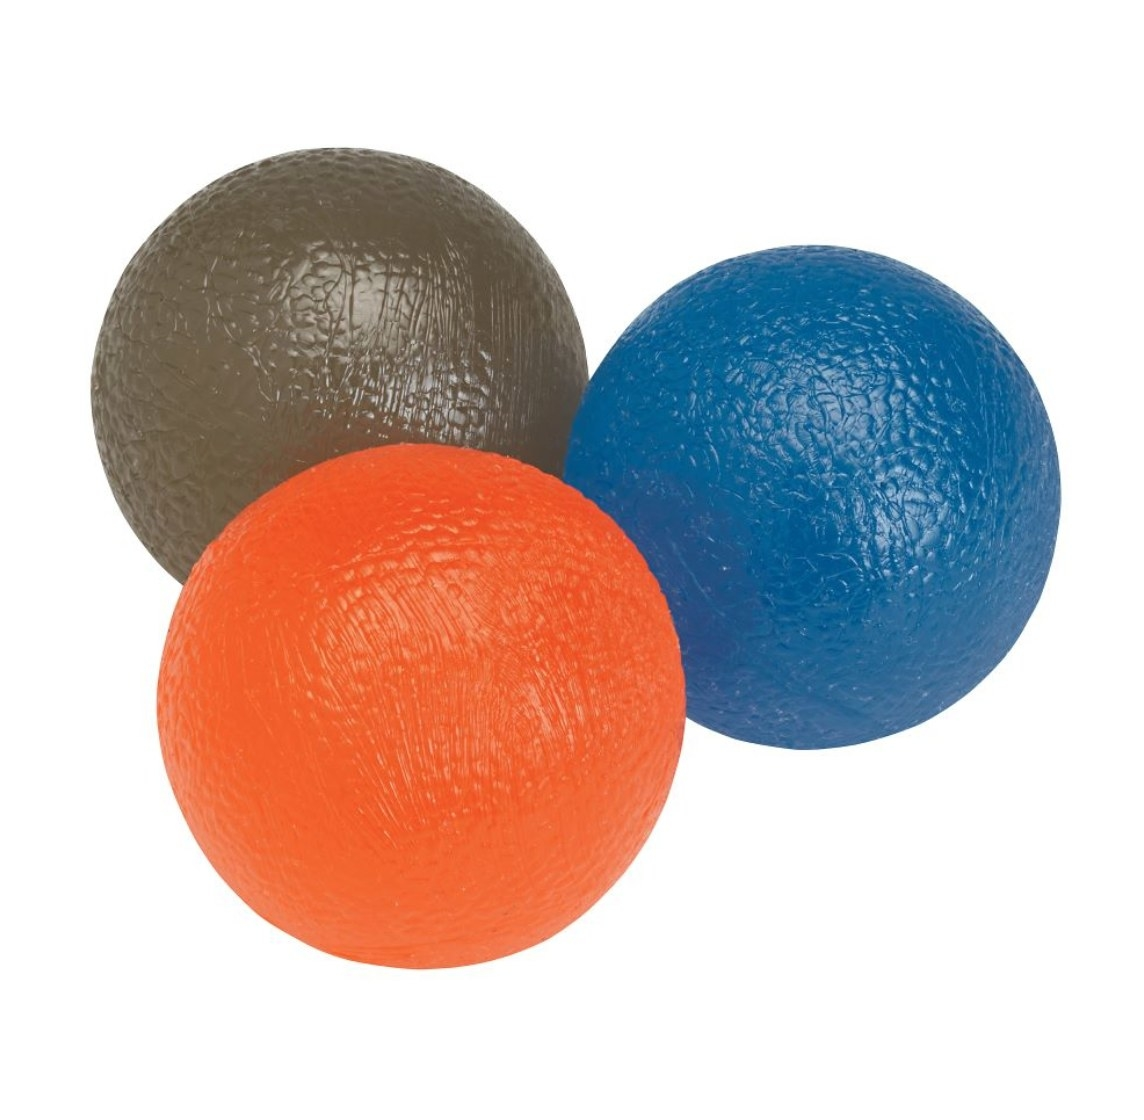 The hand recovery kit in three colors